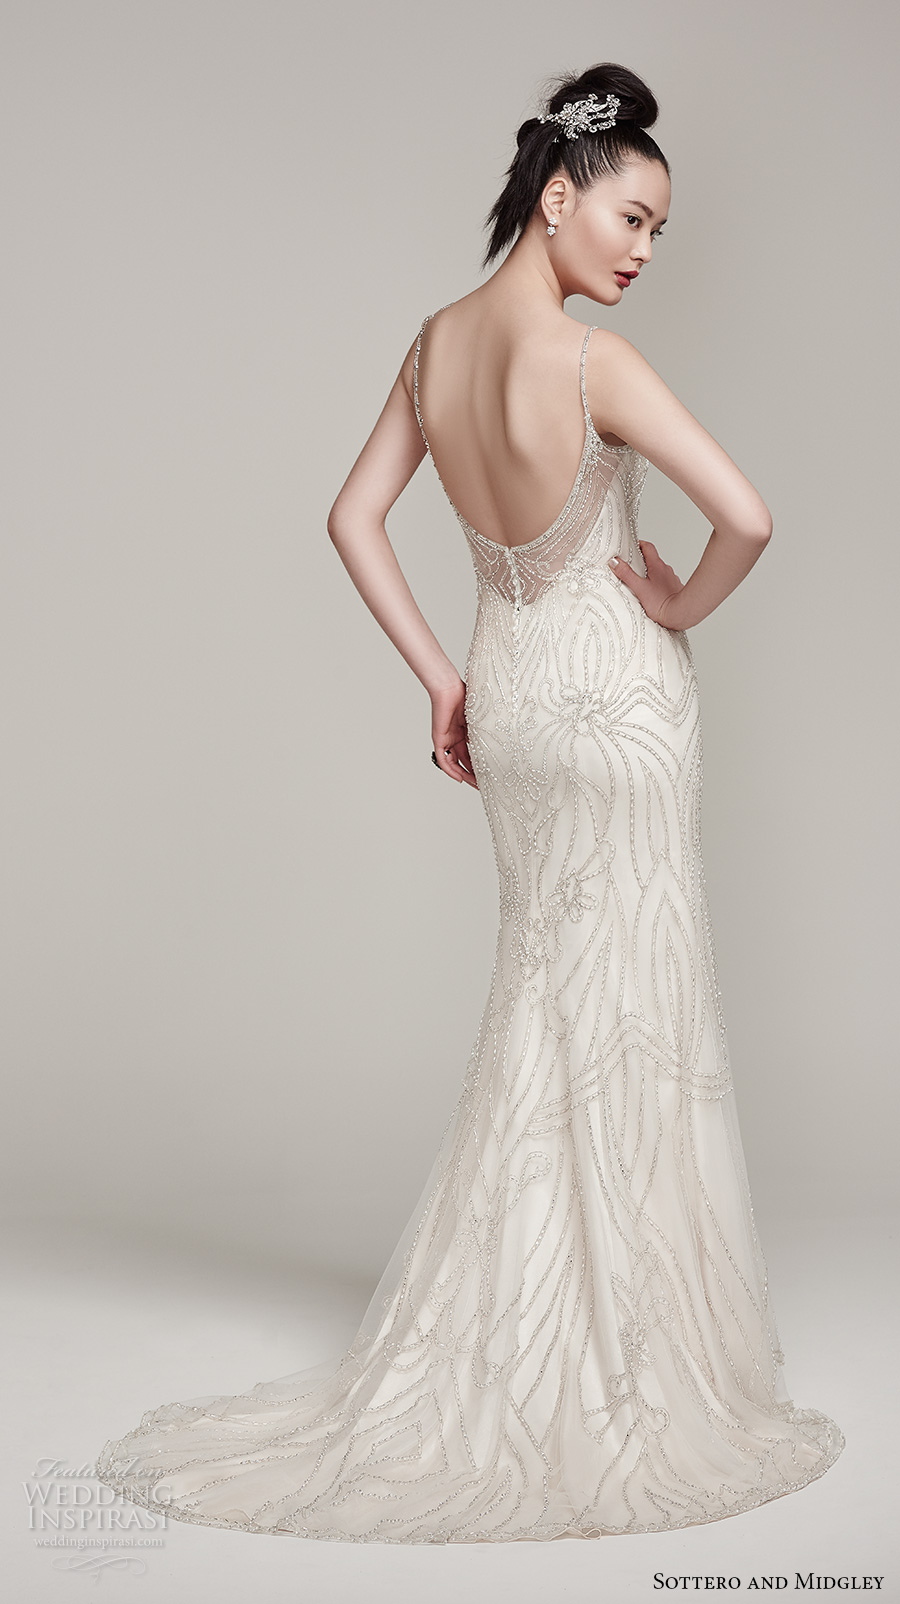 sottero midgley fall 2016 bridal sleeveless spagetti strap v neck beaded full embellishement glamorous sheath wedding dress open back sweep train (mikelle) bv